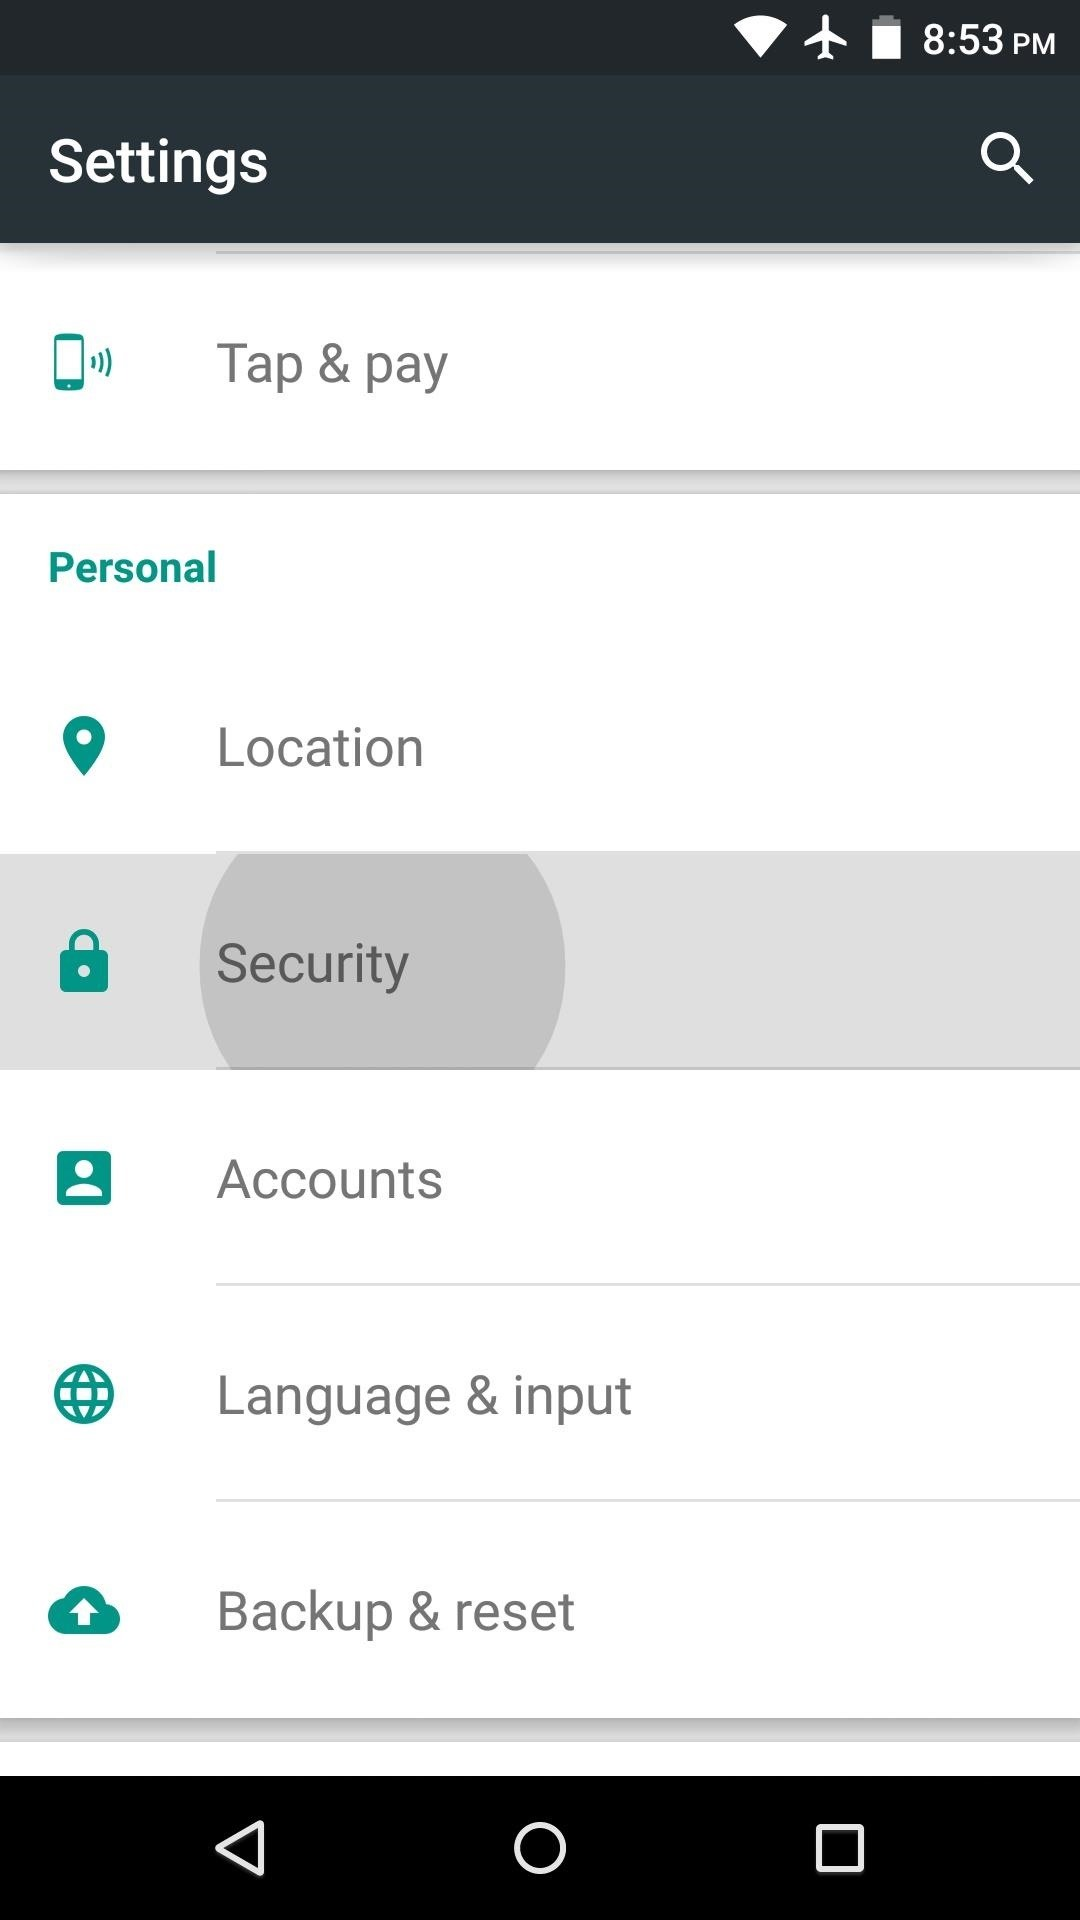 Android Basics: How to Sideload Apps by Enabling 'Unknown Sources' or 'Install Other Apps'